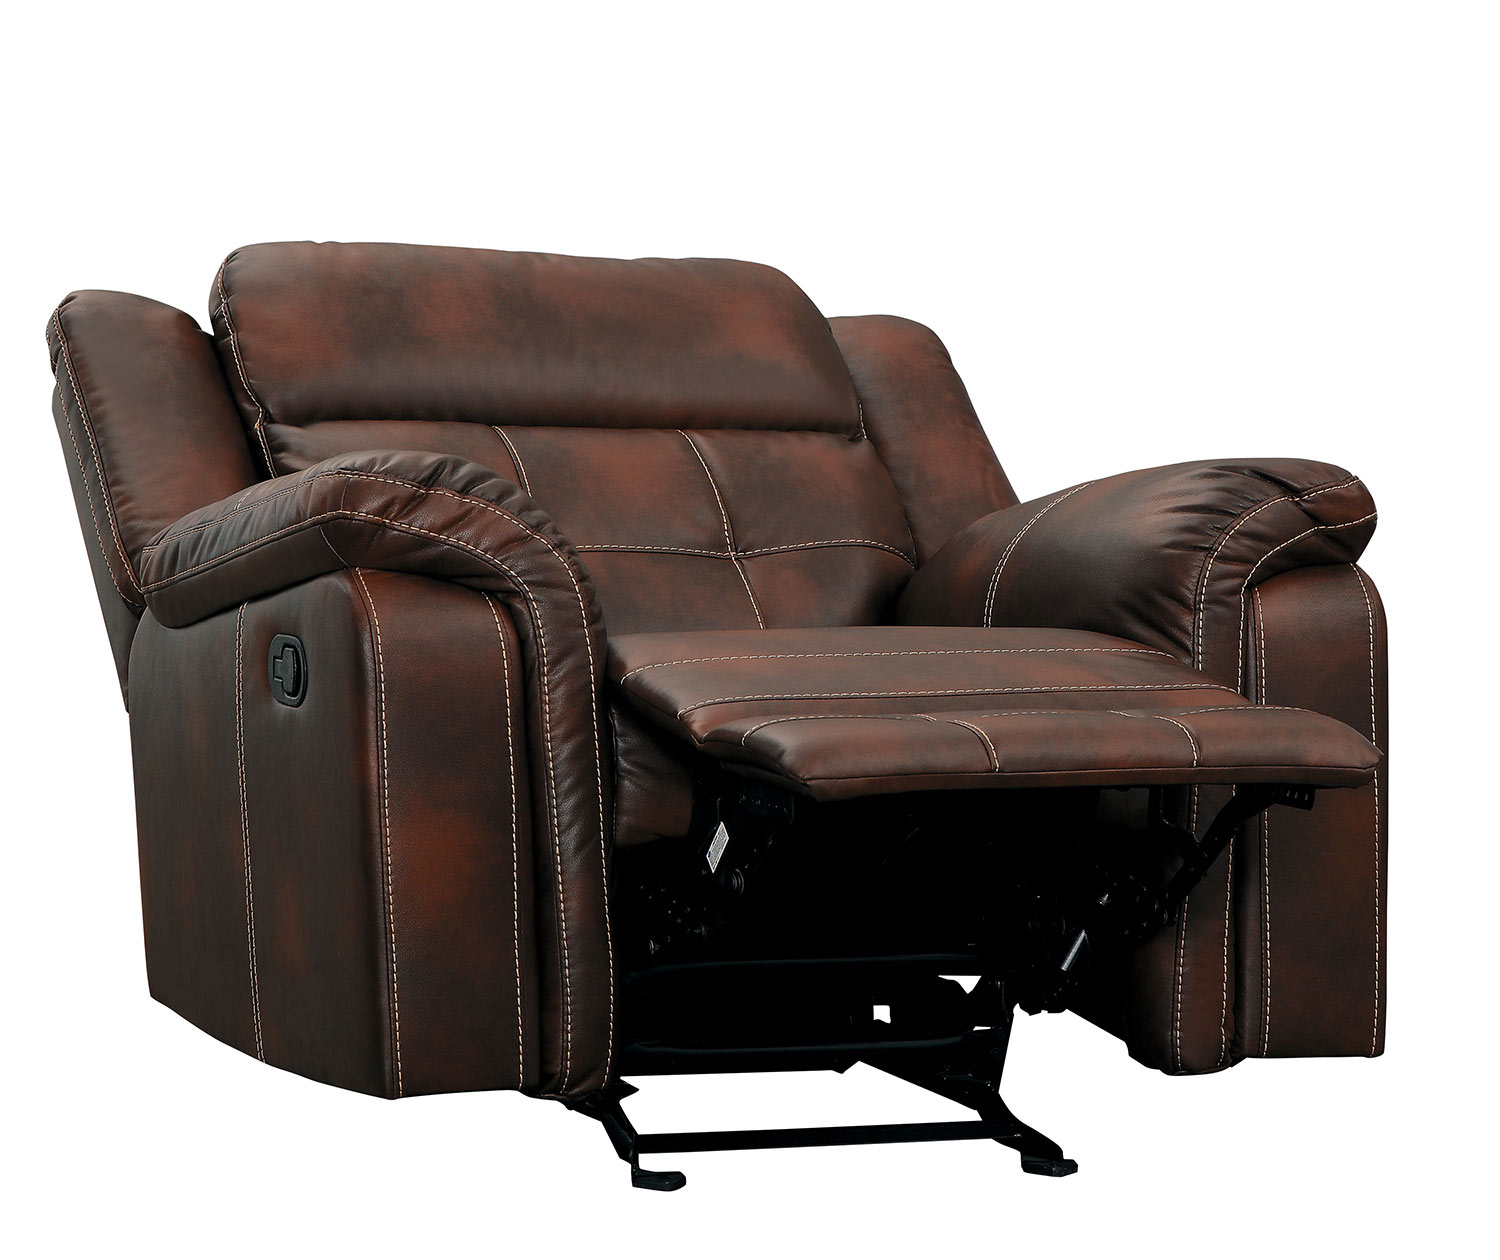 Homelegance Keridge Glider Reclining Chair - Brown